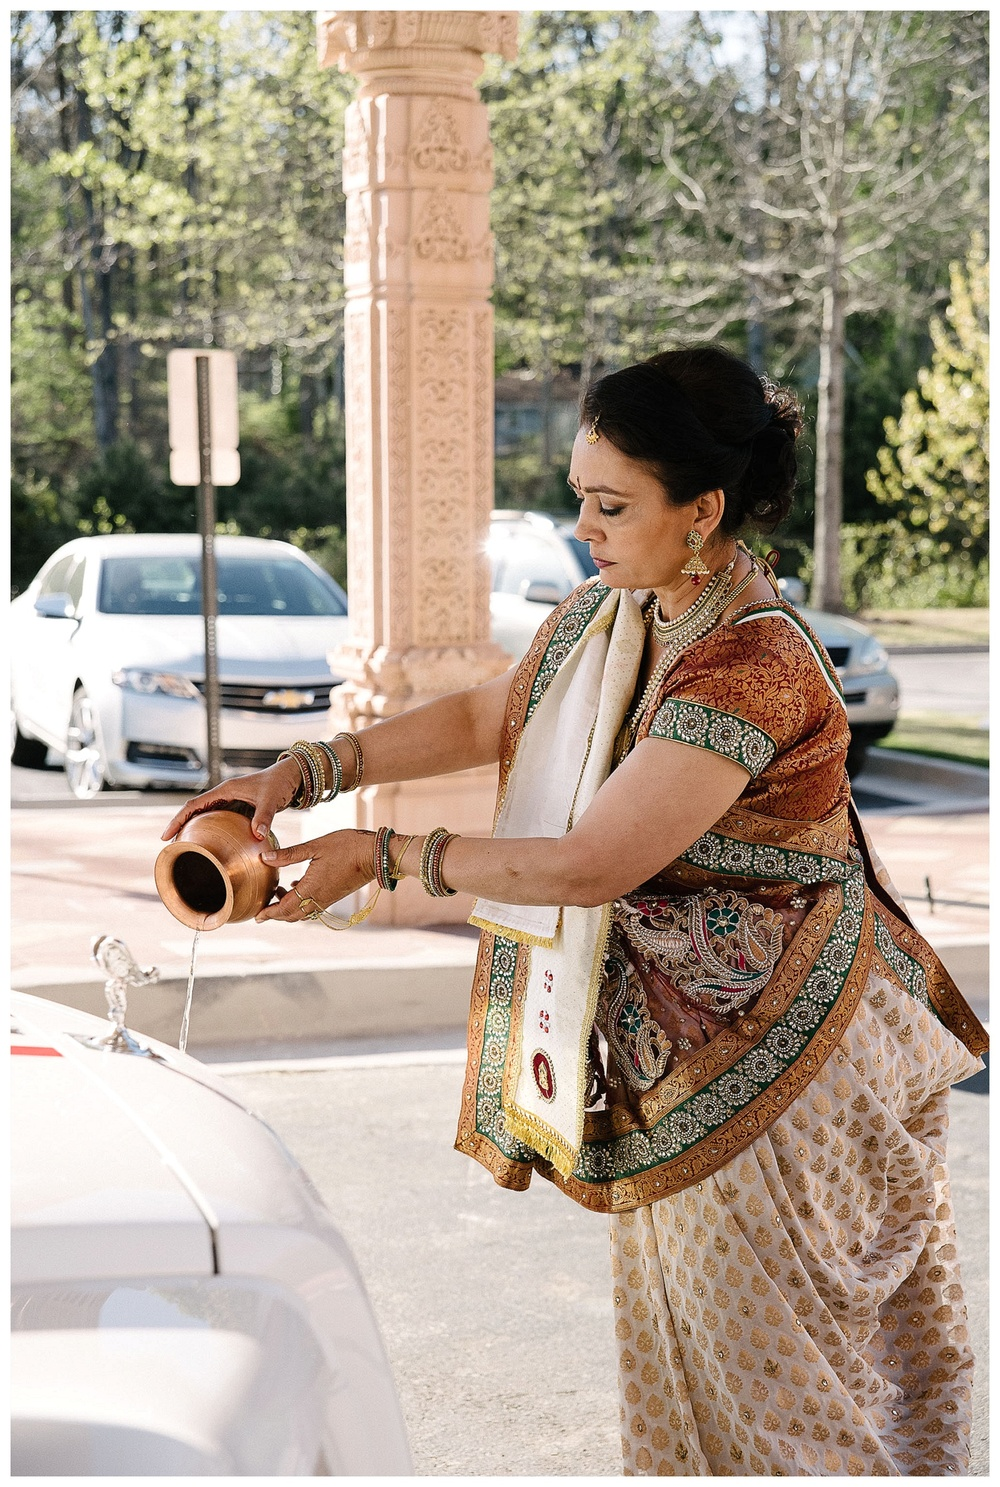 Atlanta BAPS Wedding Photographer-BAPS Indian wedding photos (2366 of 2502).jpg